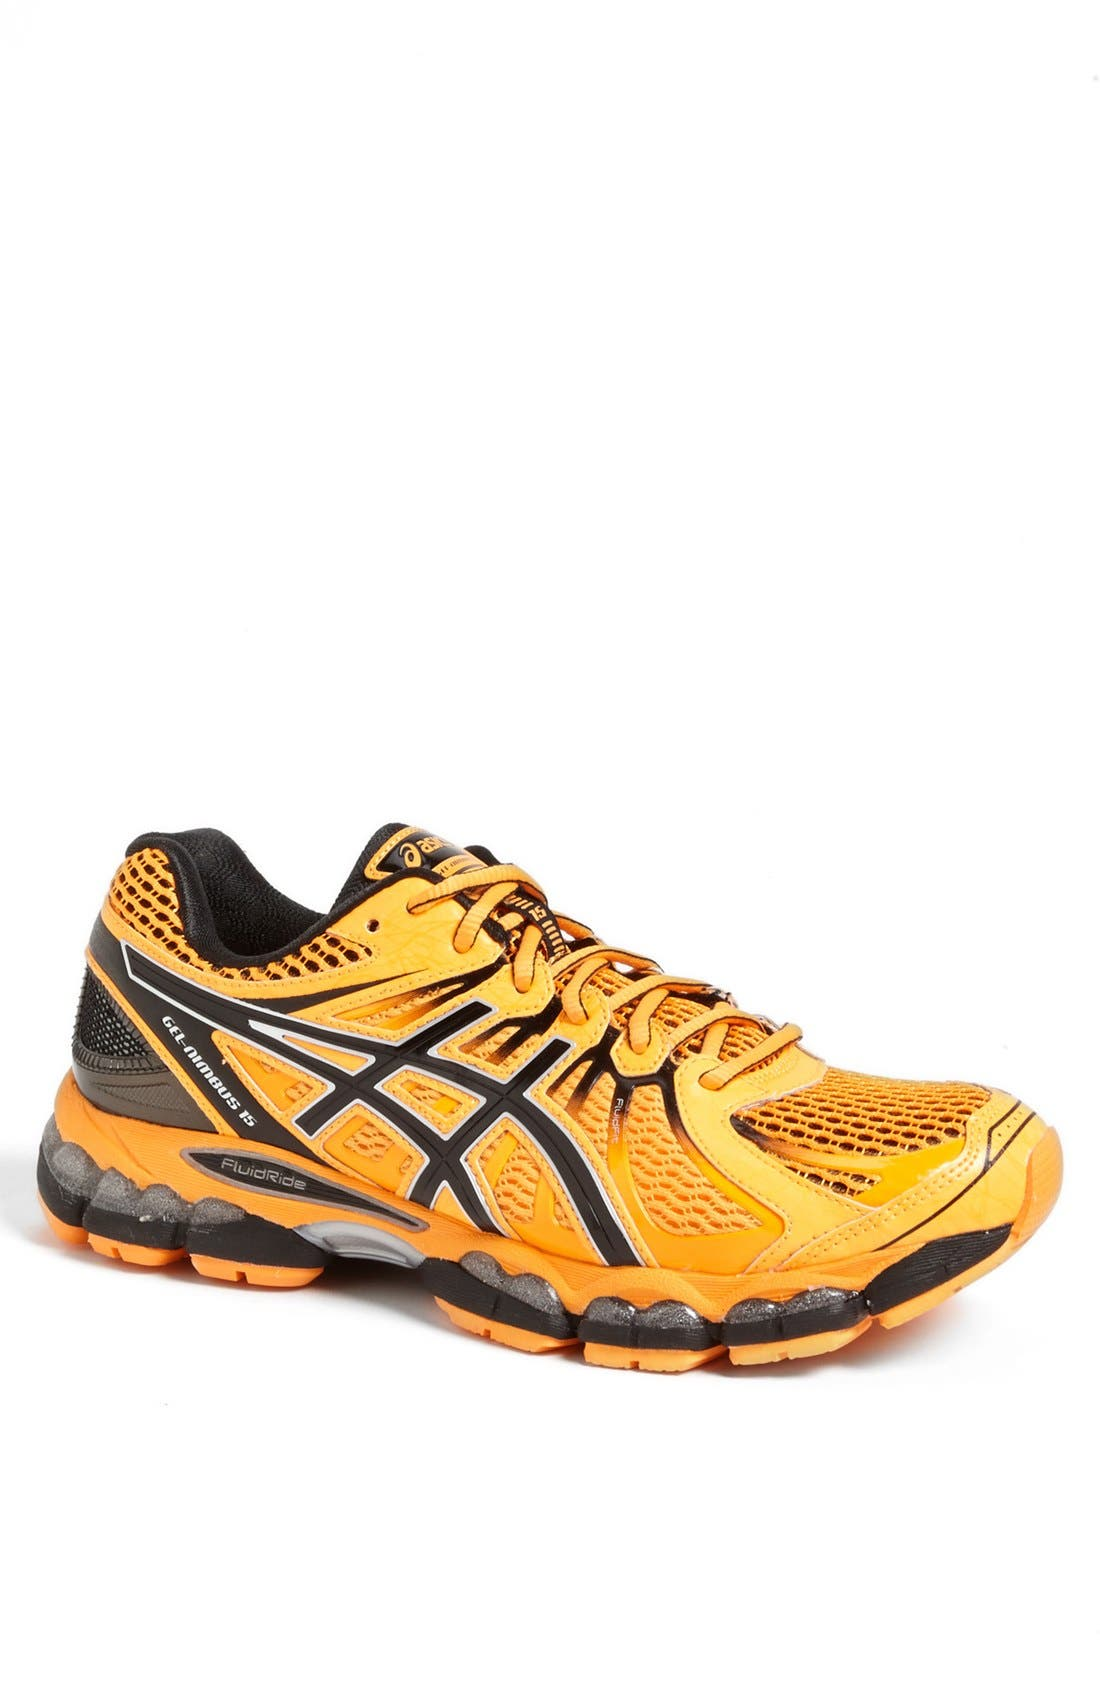 Alternate Image 1 Selected - ASICS® 'GEL-Nimbus 15' Running Shoe (Men)